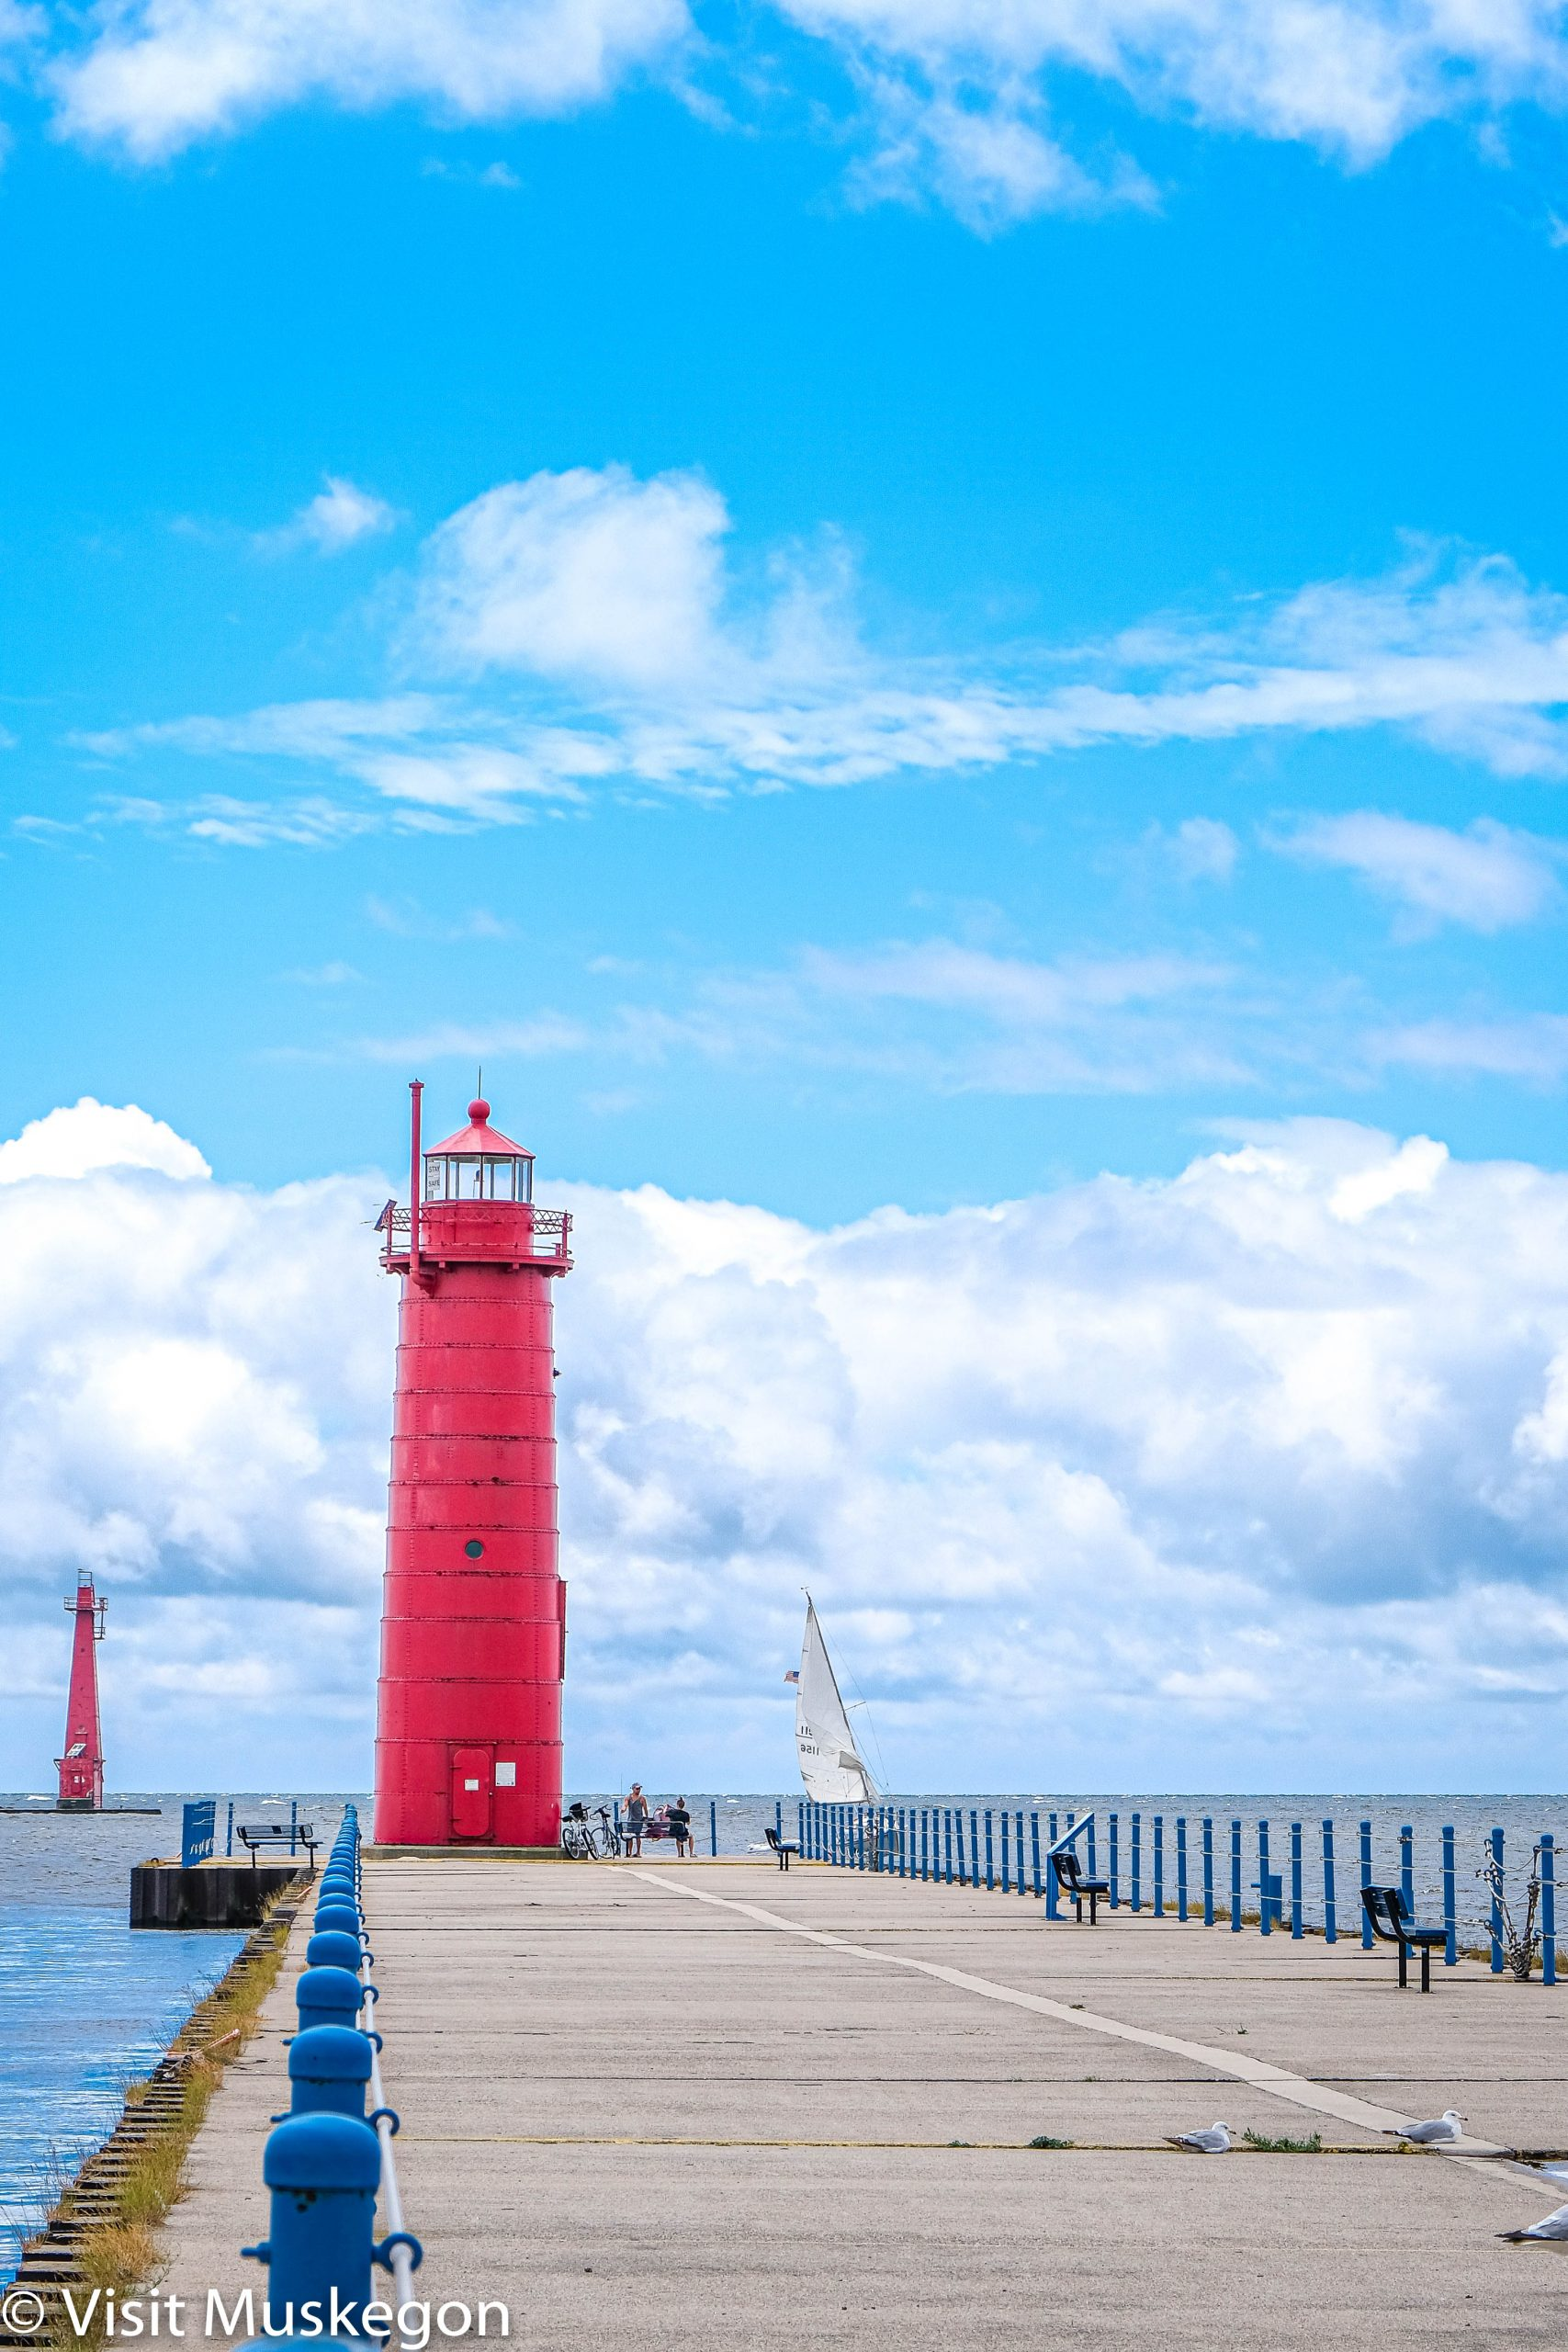 Muskegon South Pierhead Light